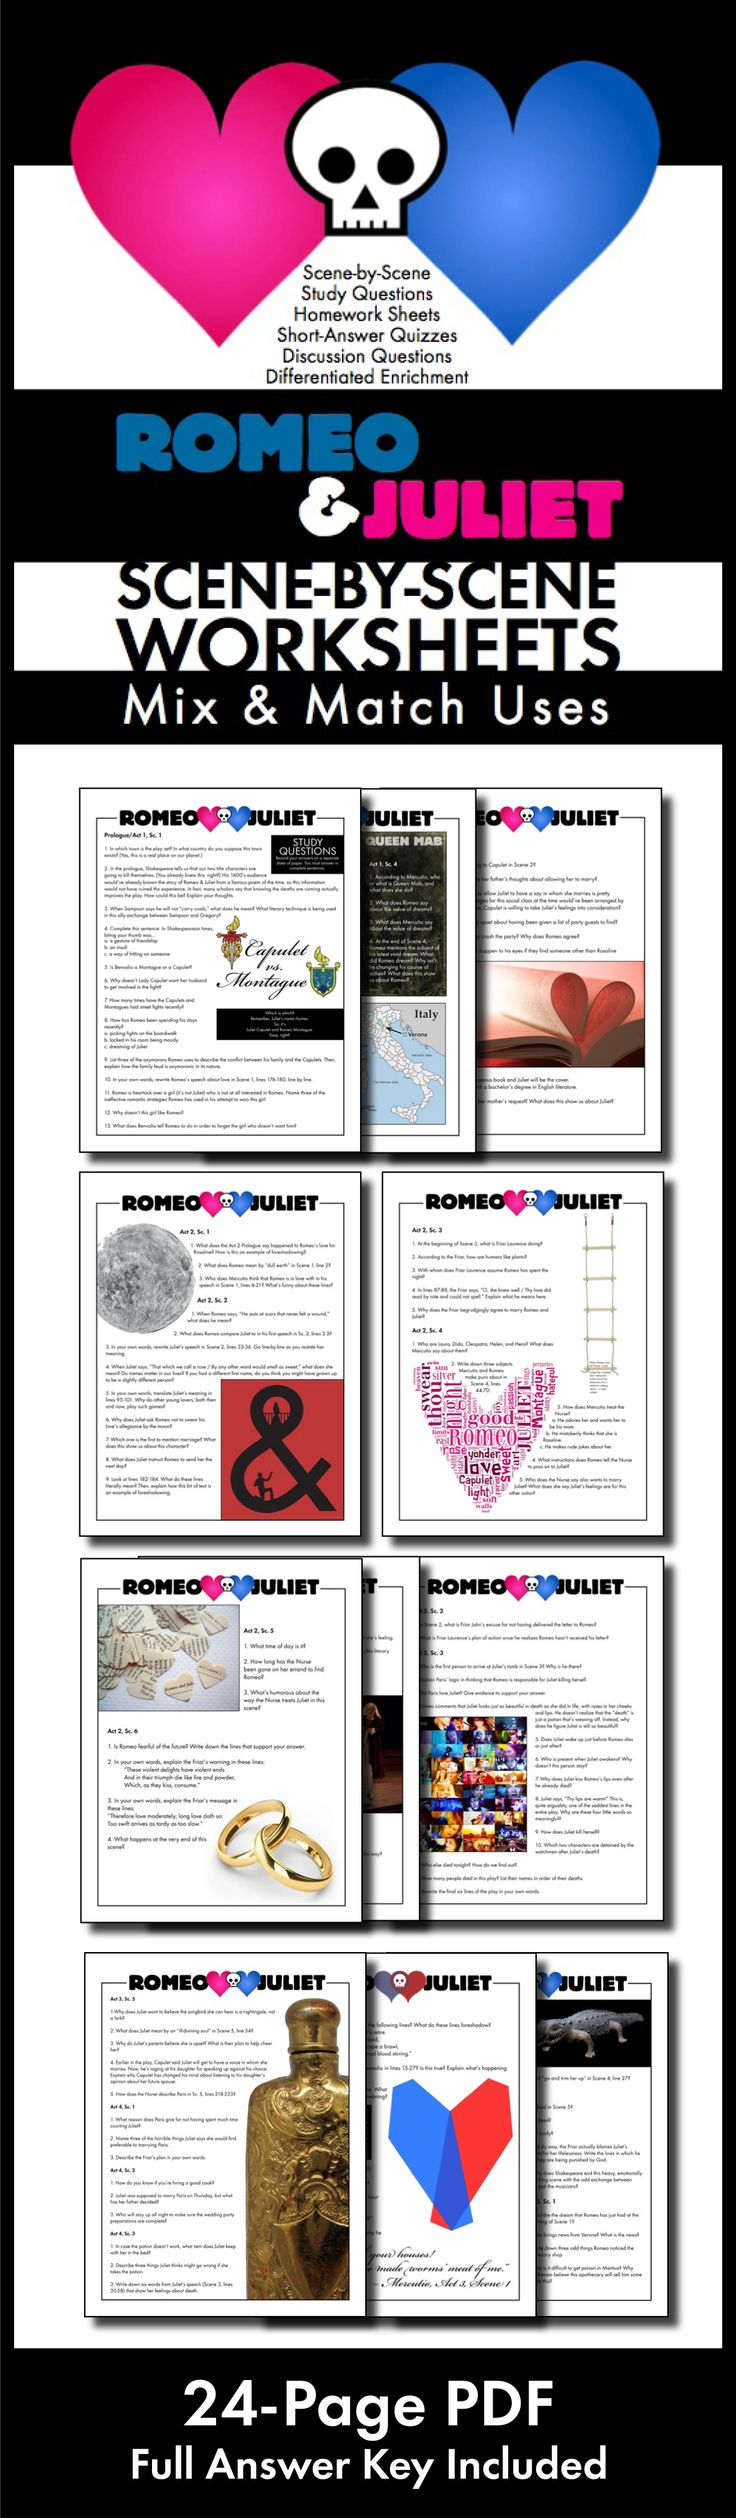 best ideas about romeo and juliet literature romeo juliet worksheets quizzes homework discussion for shakespeare s play